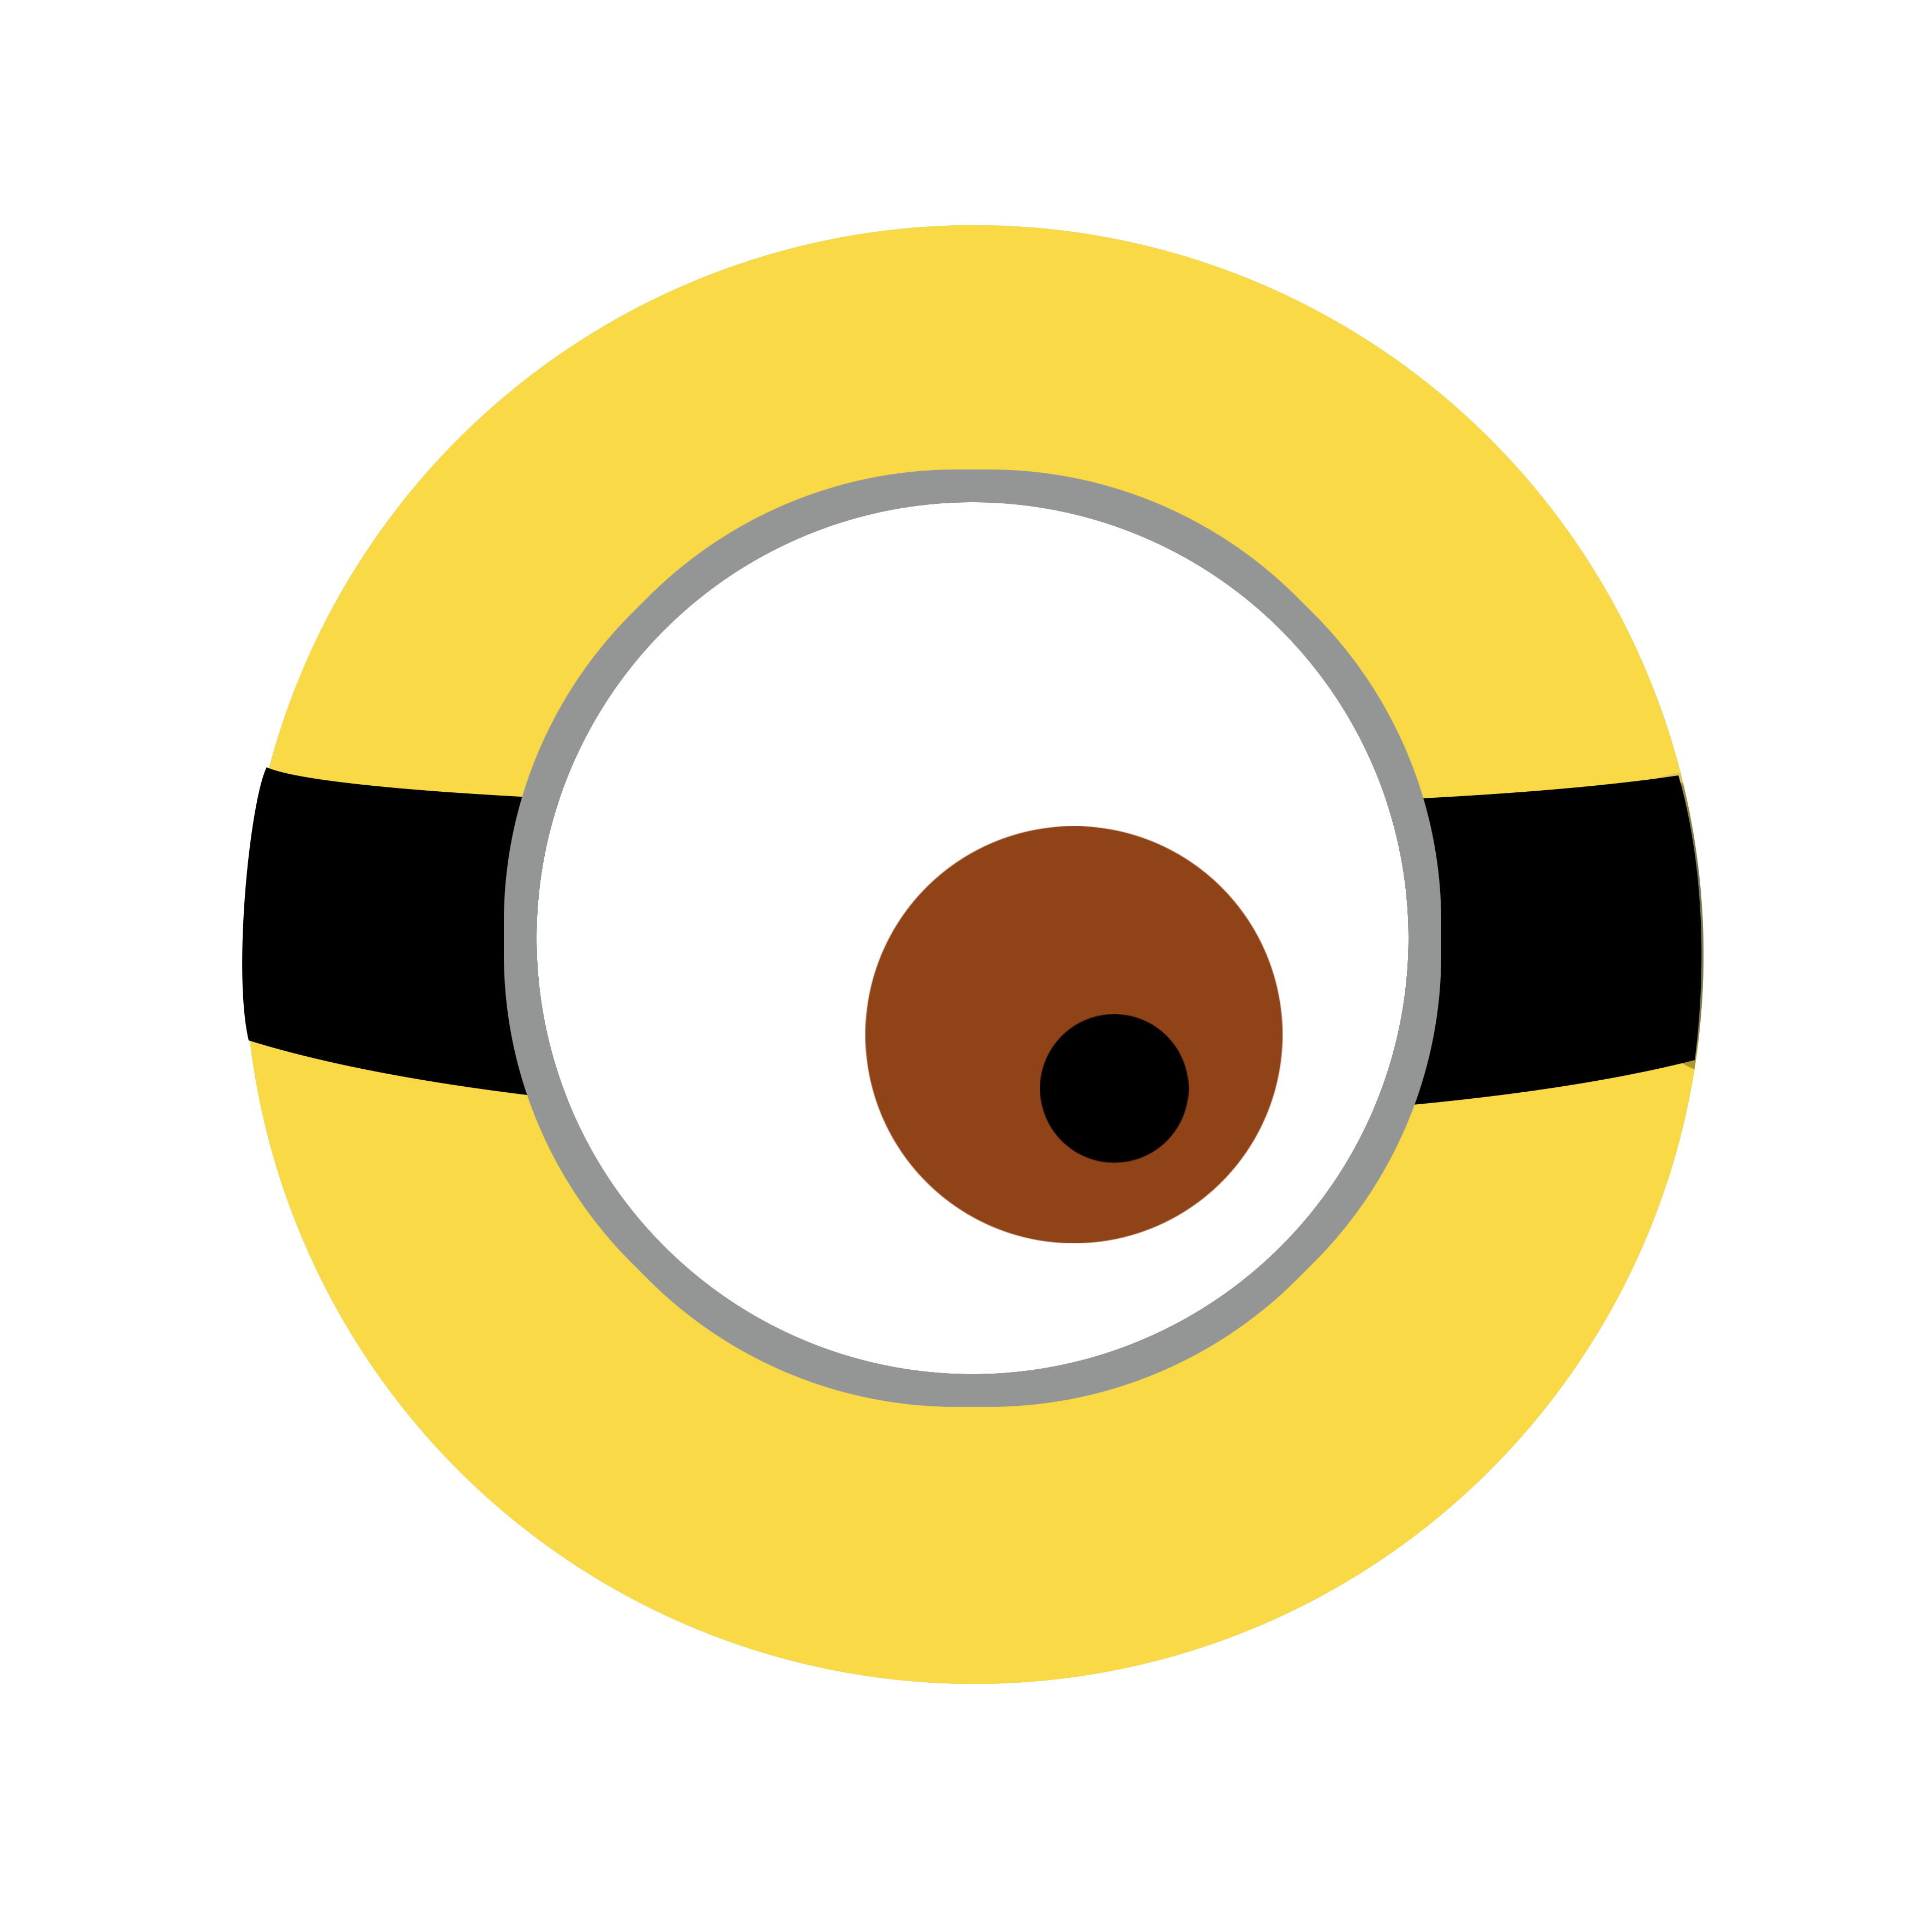 minion_render.png